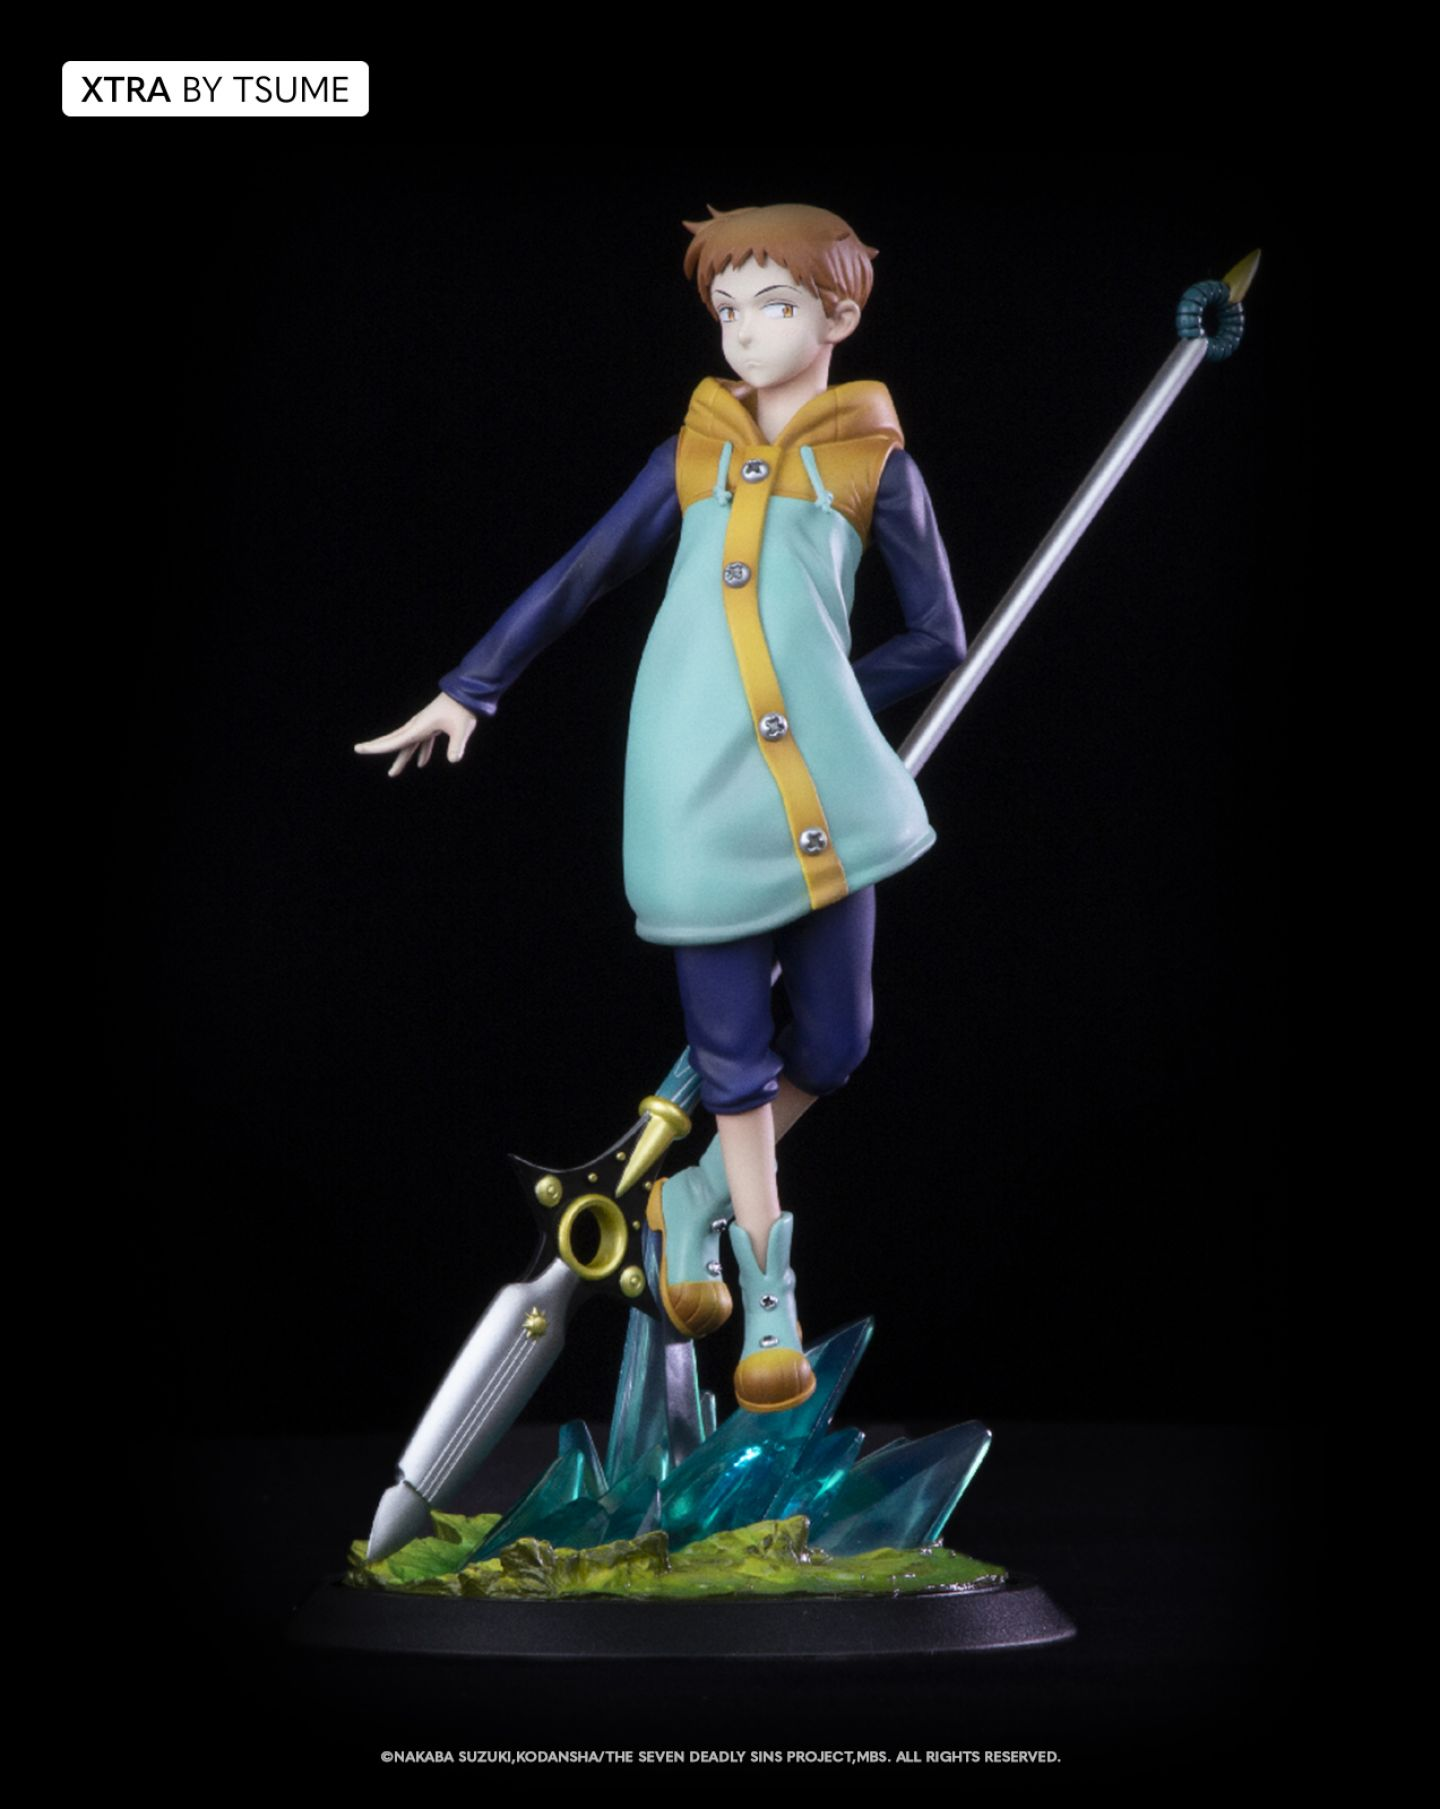 Statuette The Seven Deadly Sins King Xtra by Tsume 19cm